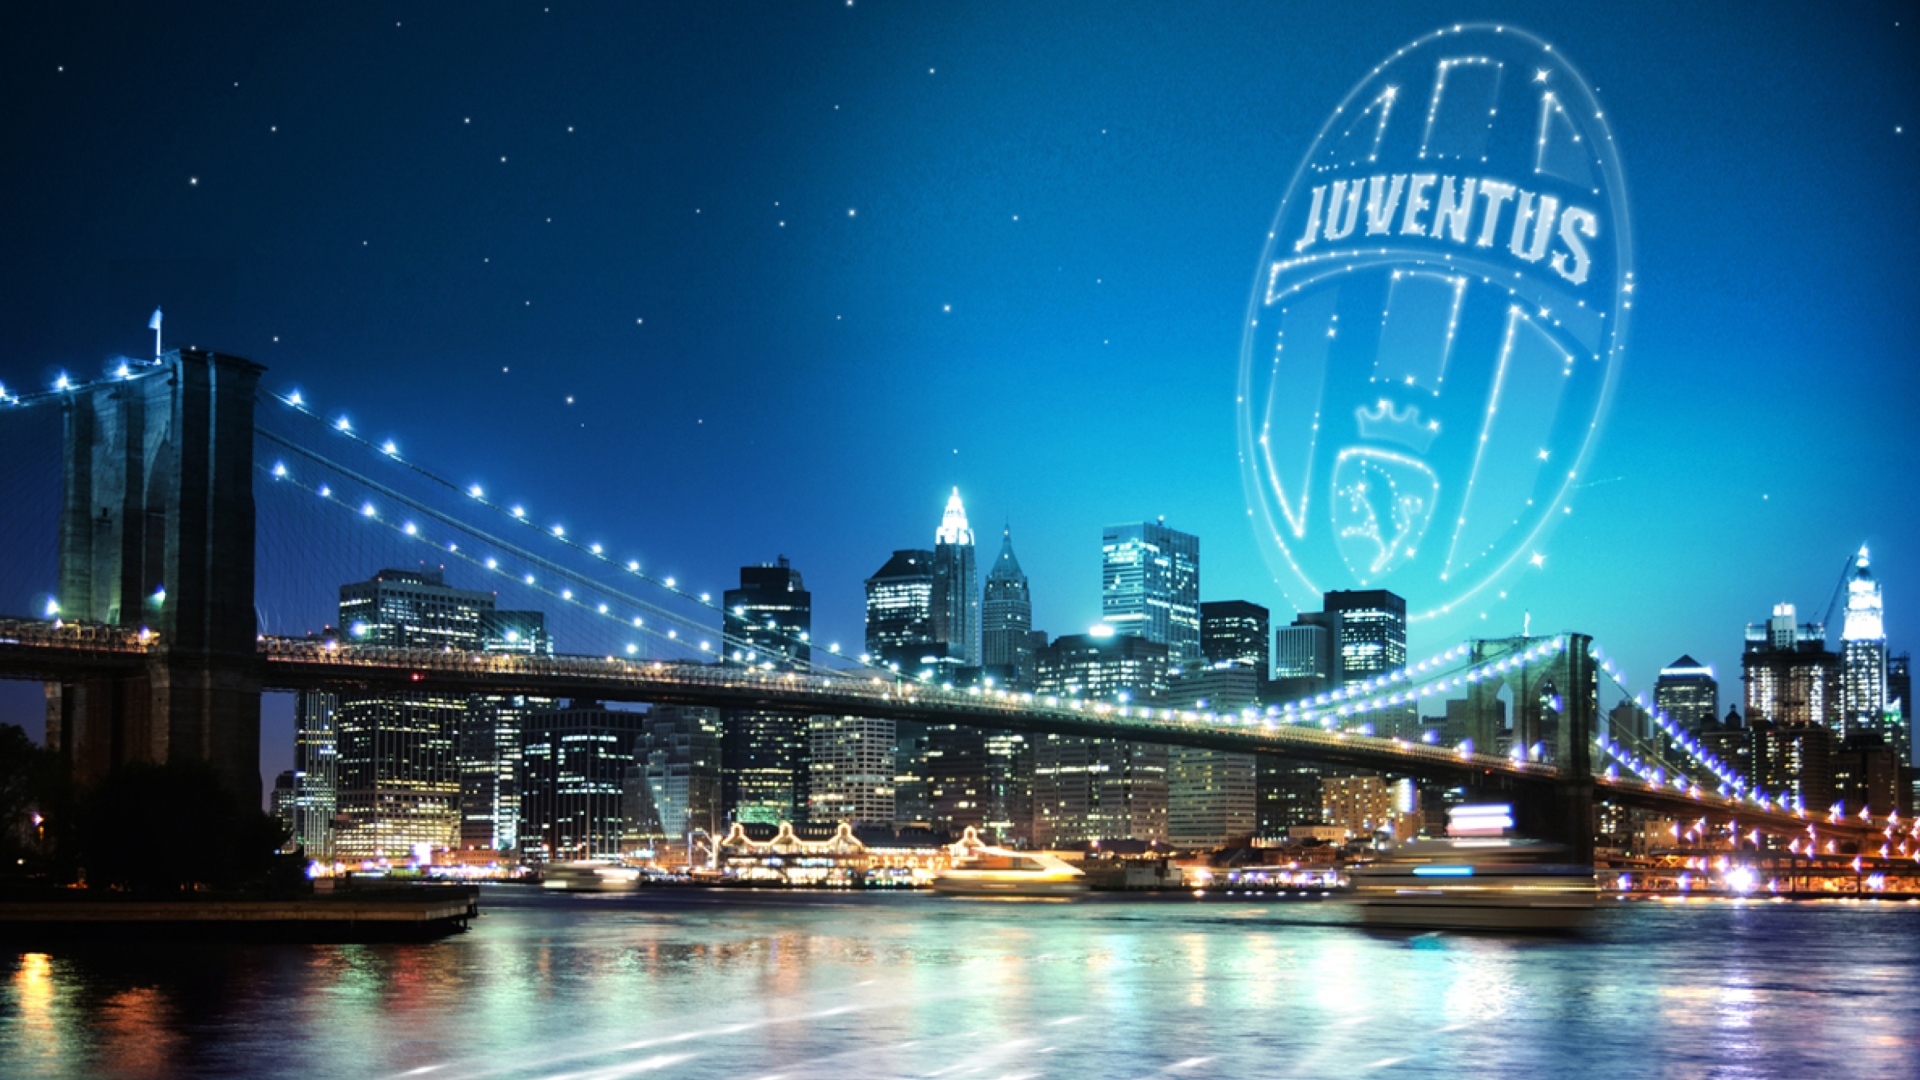 Juventus sfondi gratuiti per desktop 1920x1080 full hd for Sfondi full hd pc